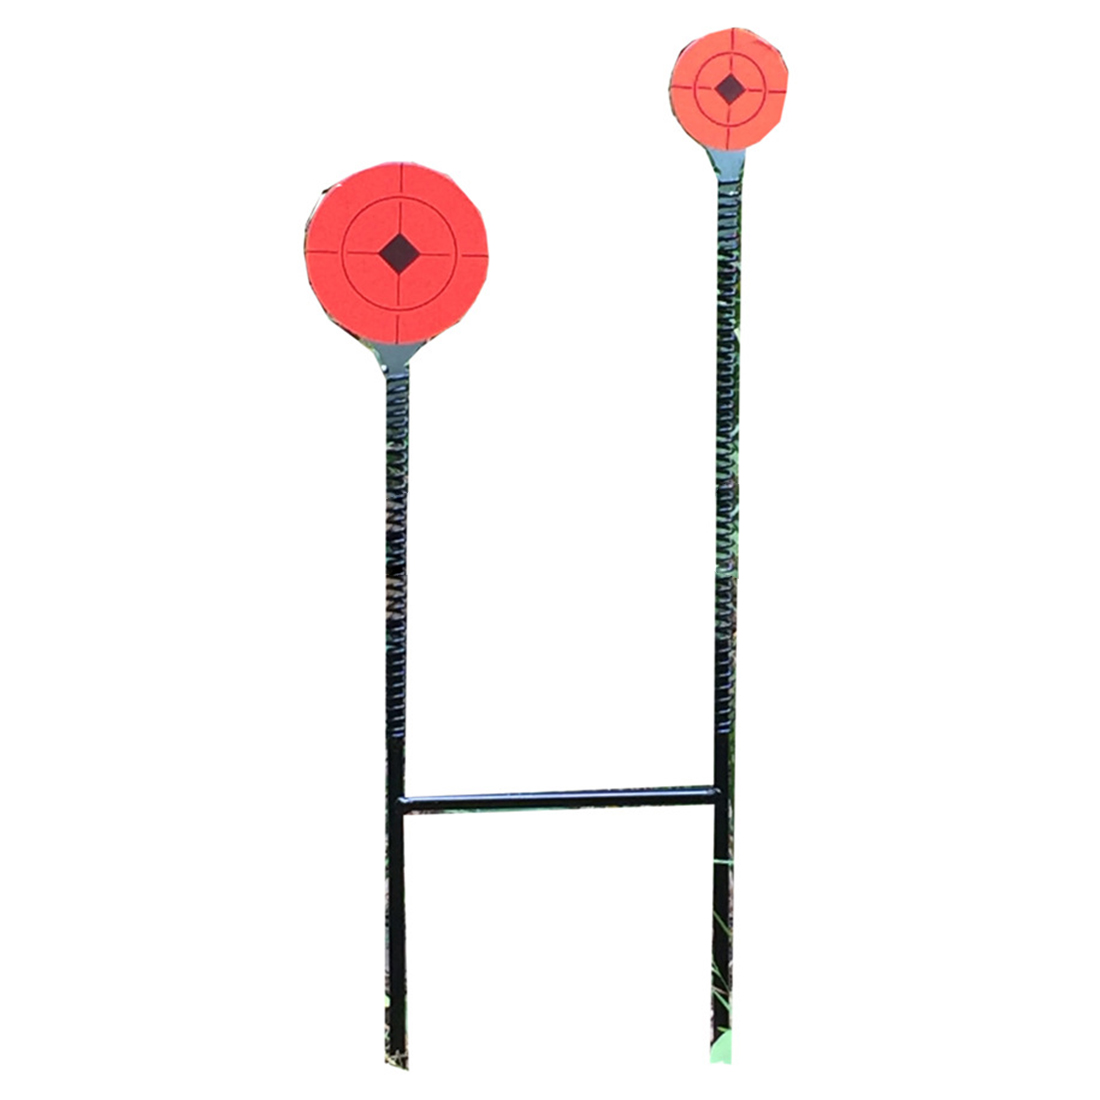 2019 Durable 14cm Diameter Elastic Shooting Training Target Outdoor Paintball Accessories for Hunting Shooting Prectice Target-in Paintball Accessories from Sports & Entertainment